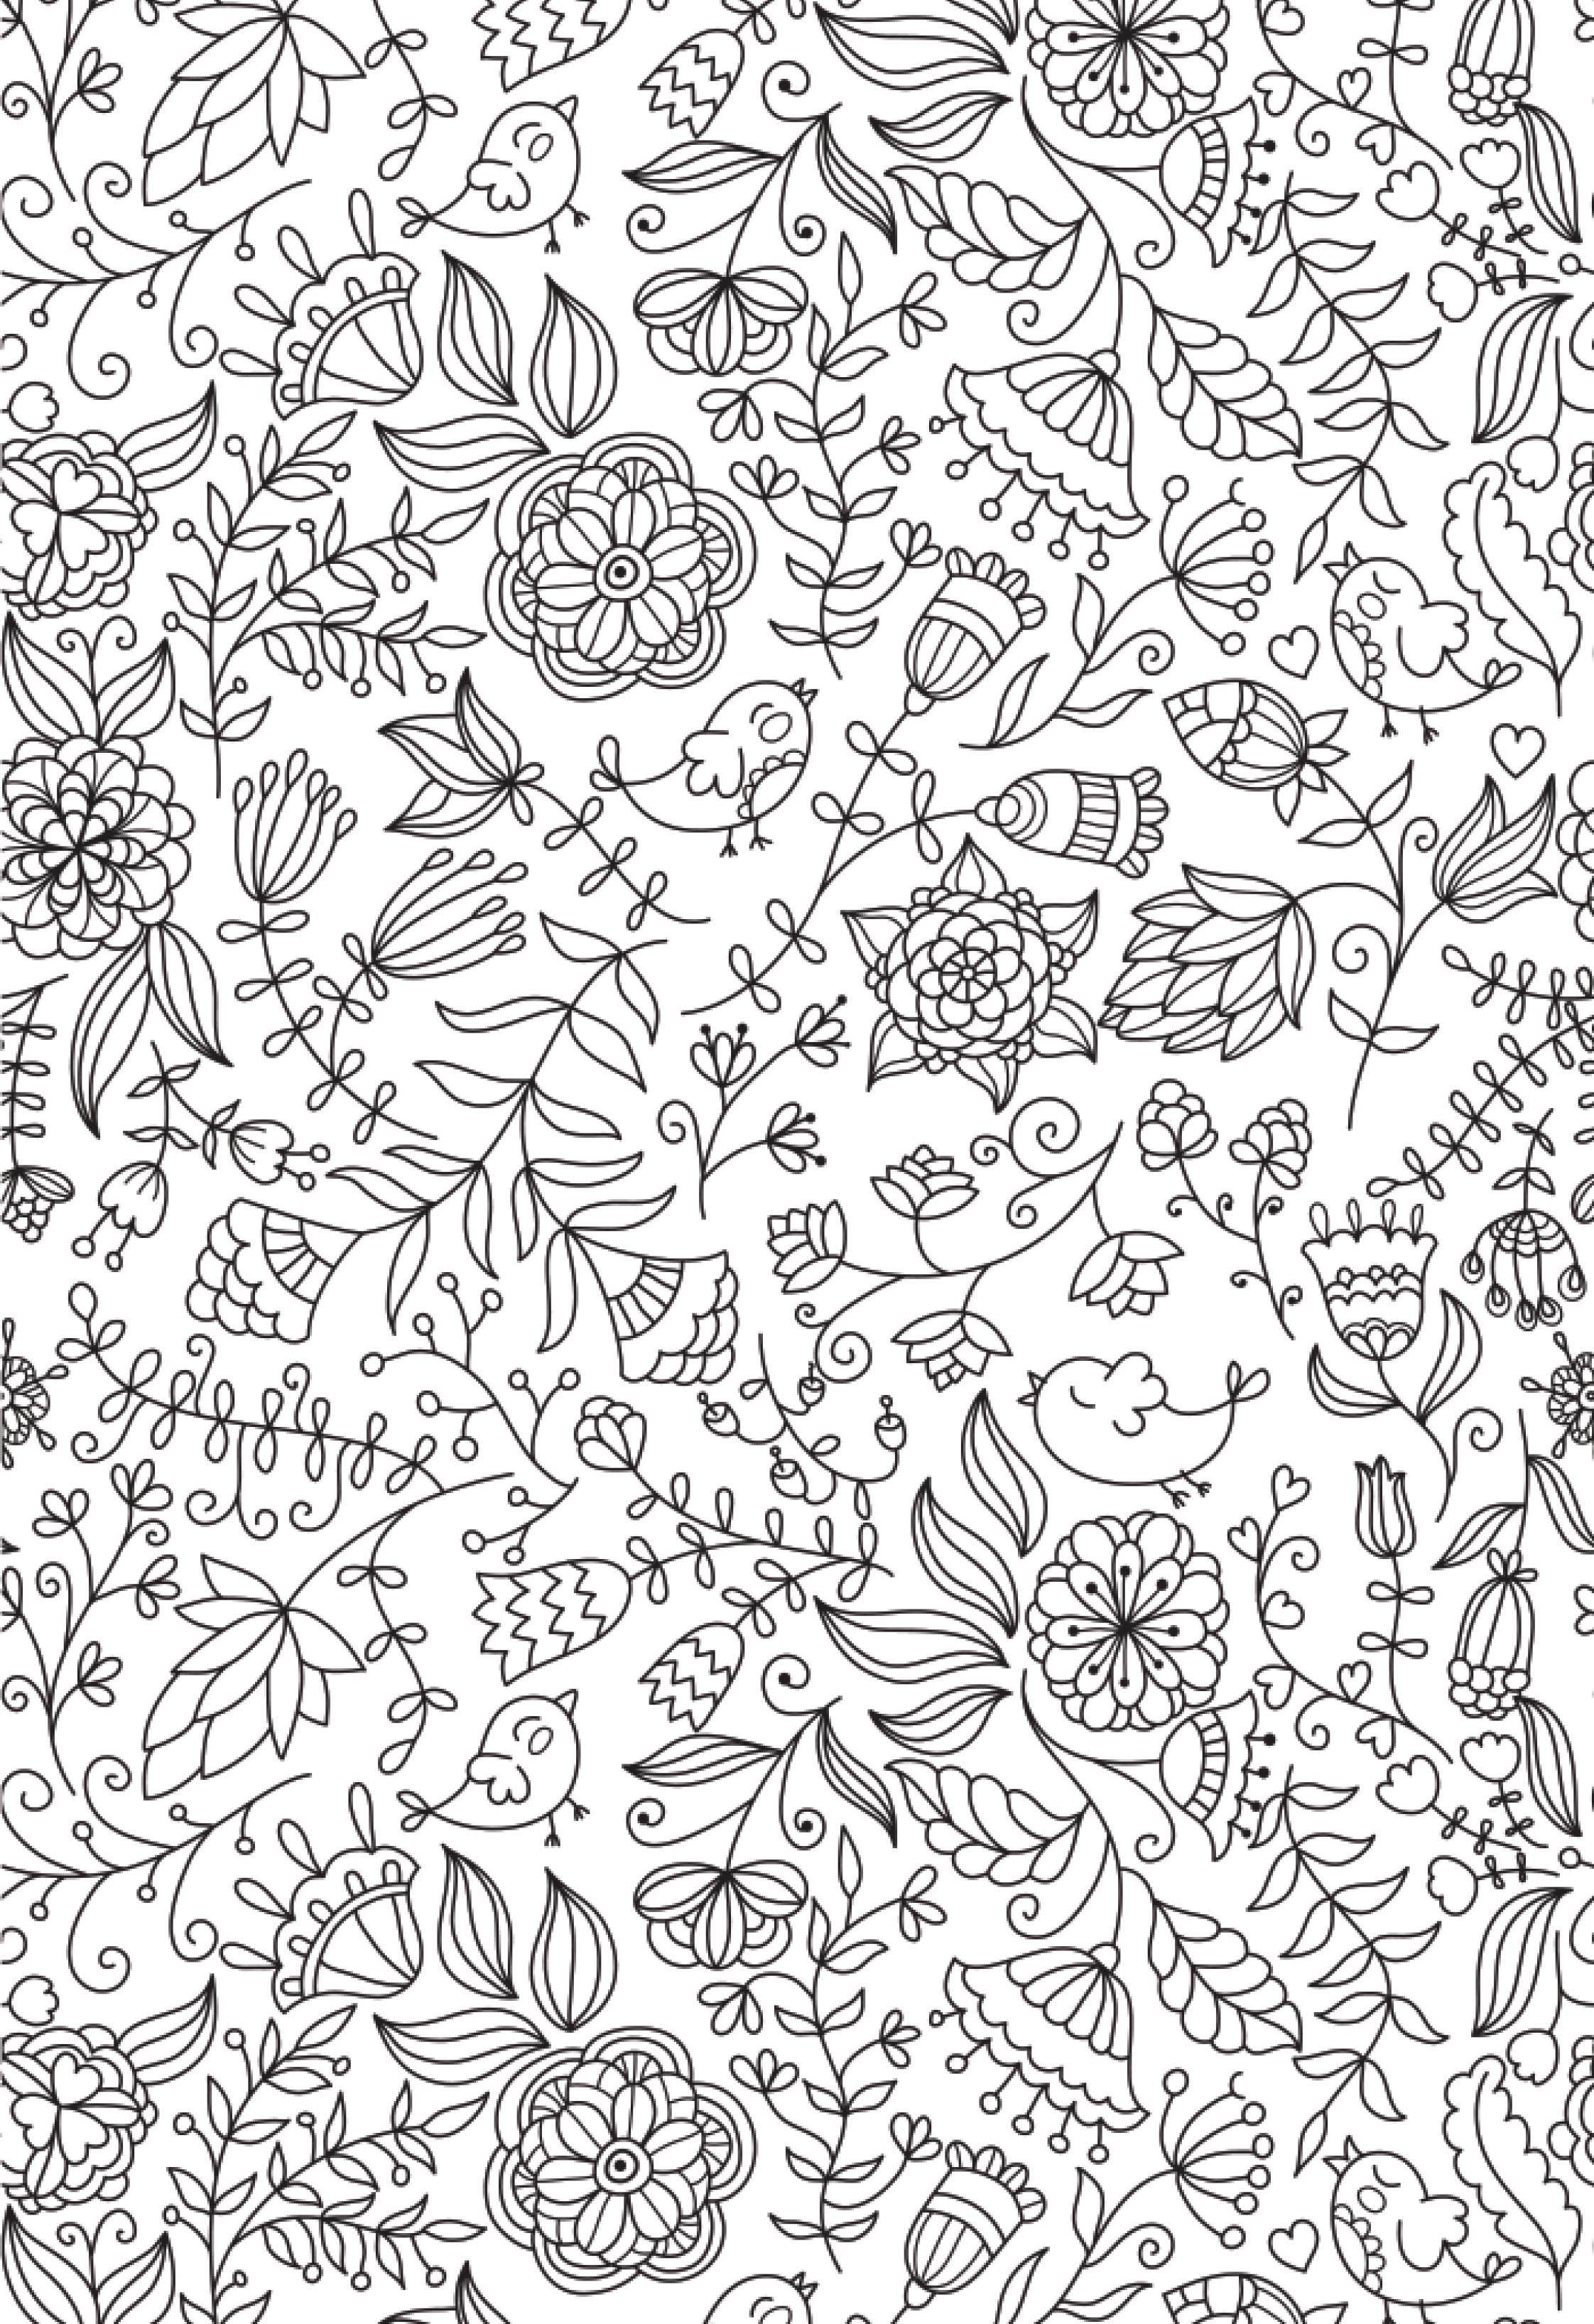 Free colouring pages for adults to help you relax